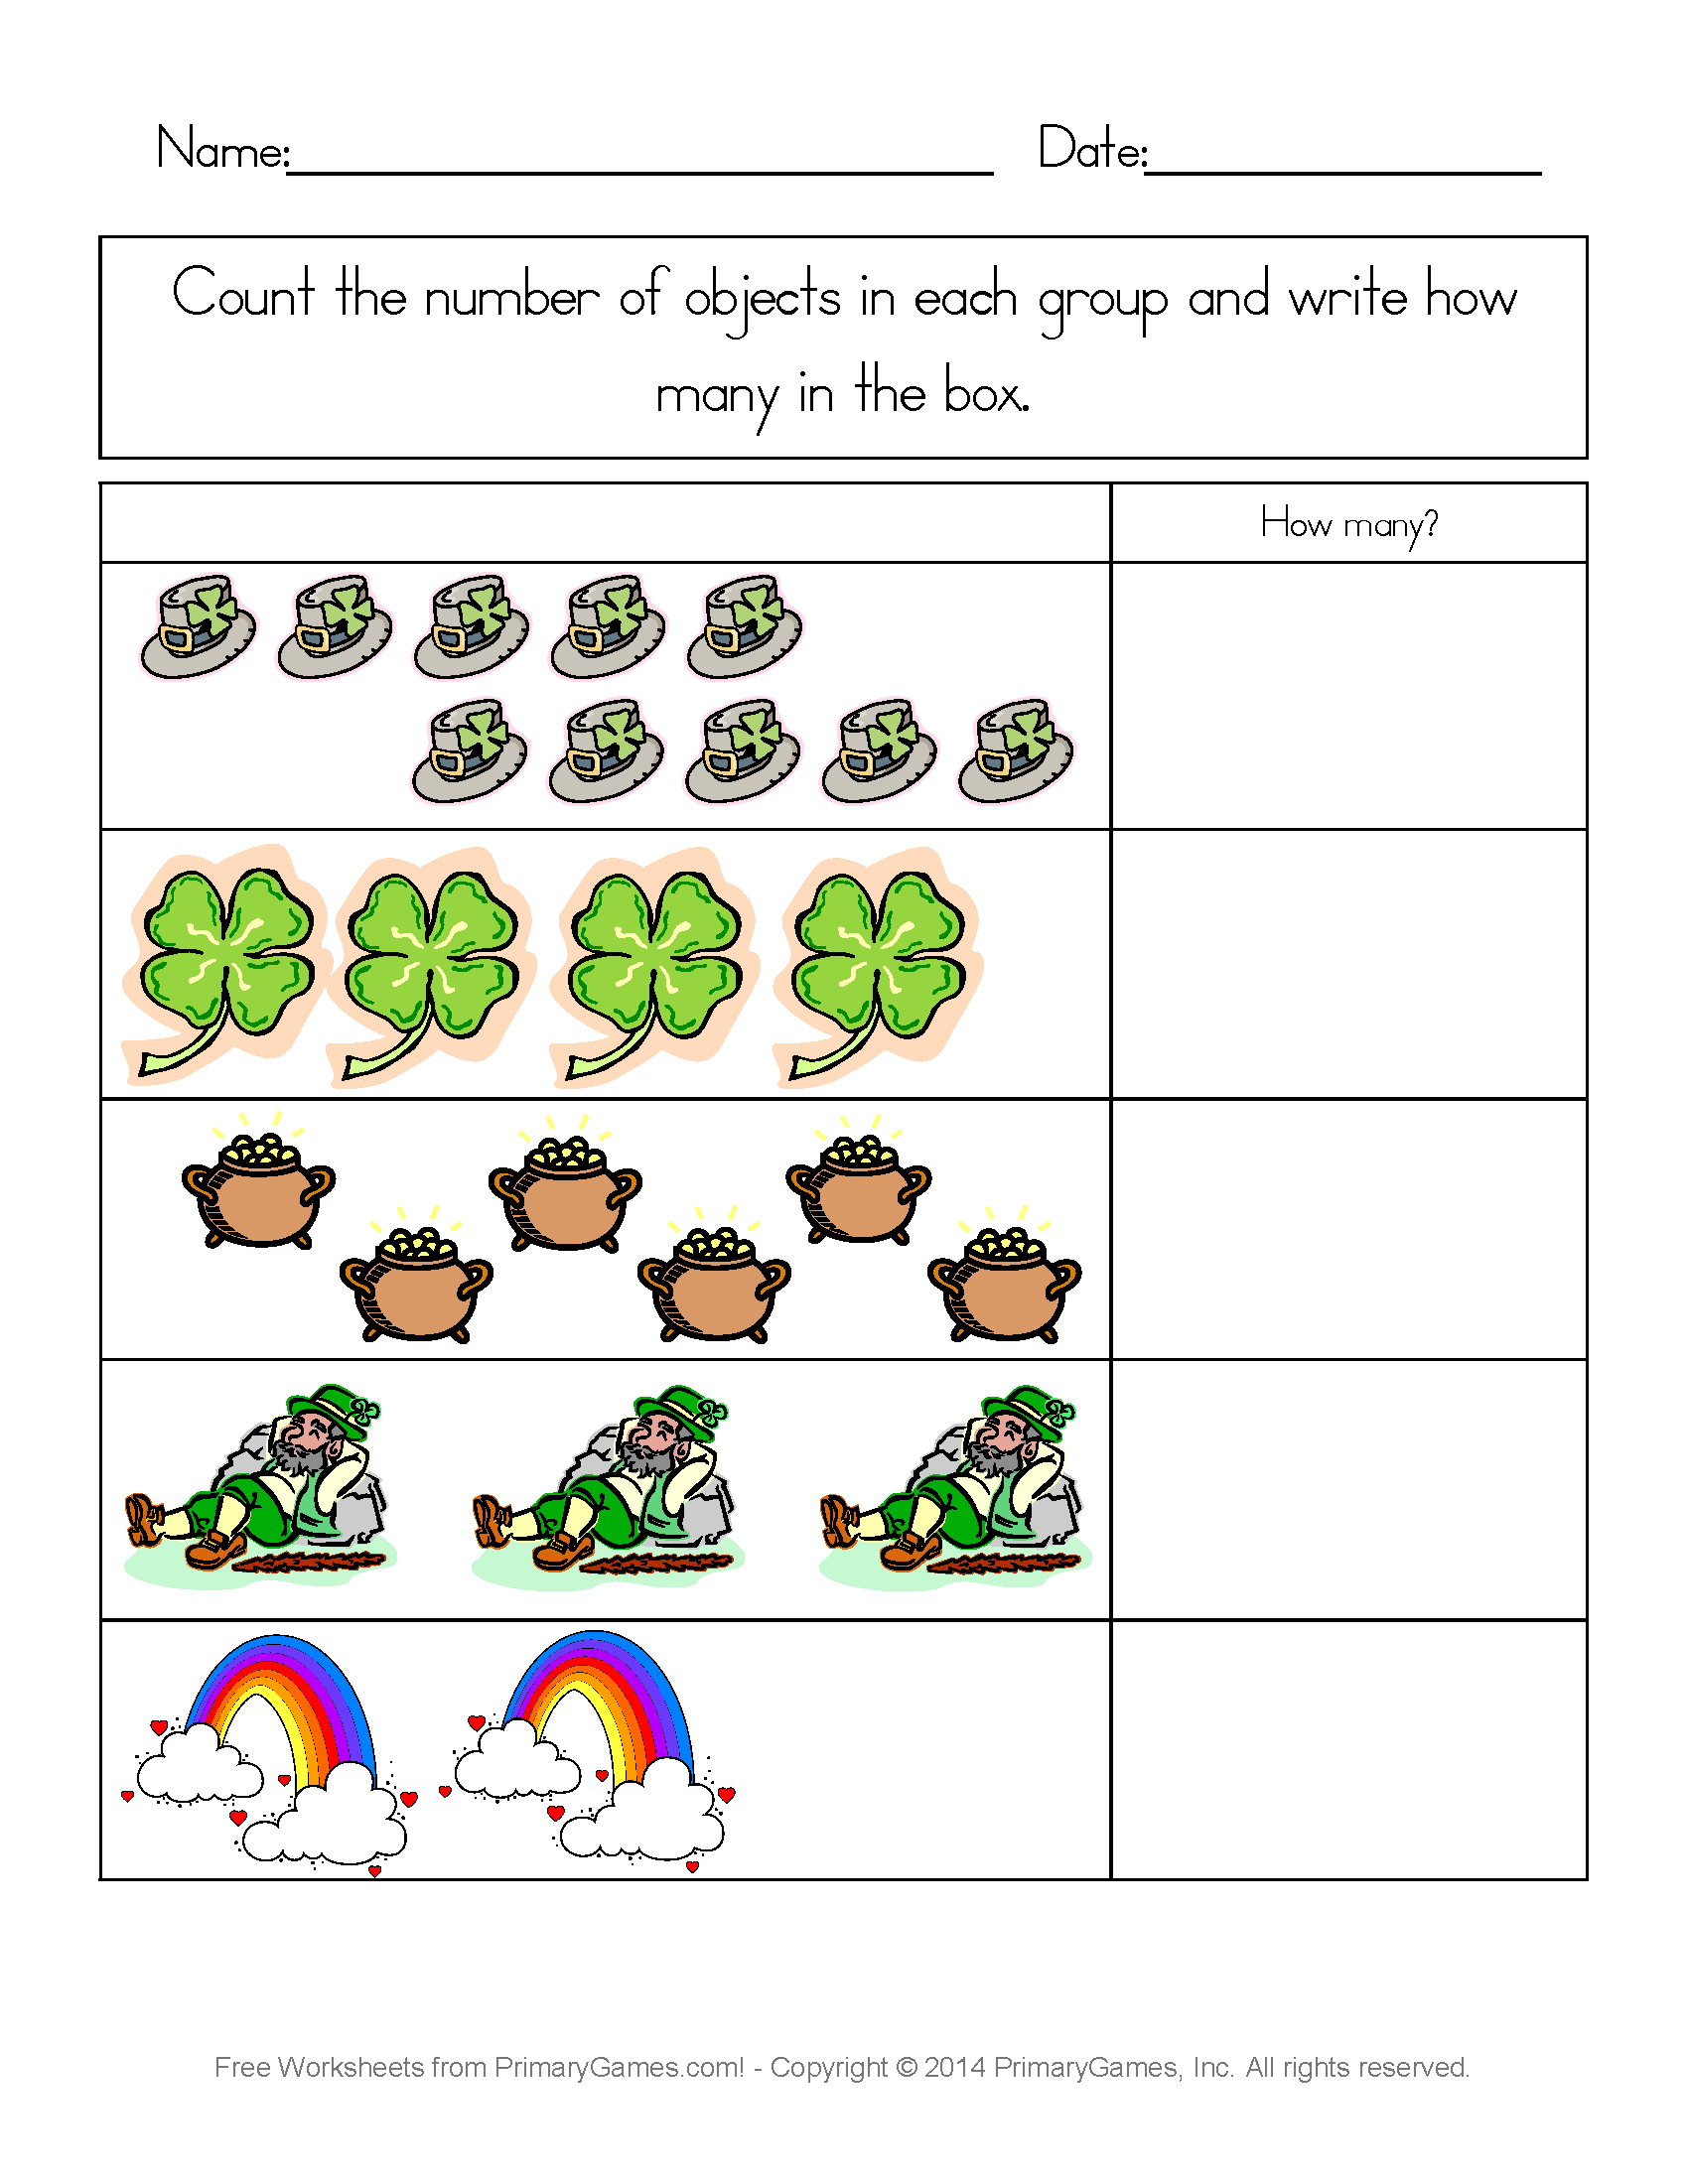 St Patrick S Day Counting Practice Free Printable Ebook St Patrick S Day Words St Patrick S Day Crafts St Patricks Day [ 2200 x 1700 Pixel ]